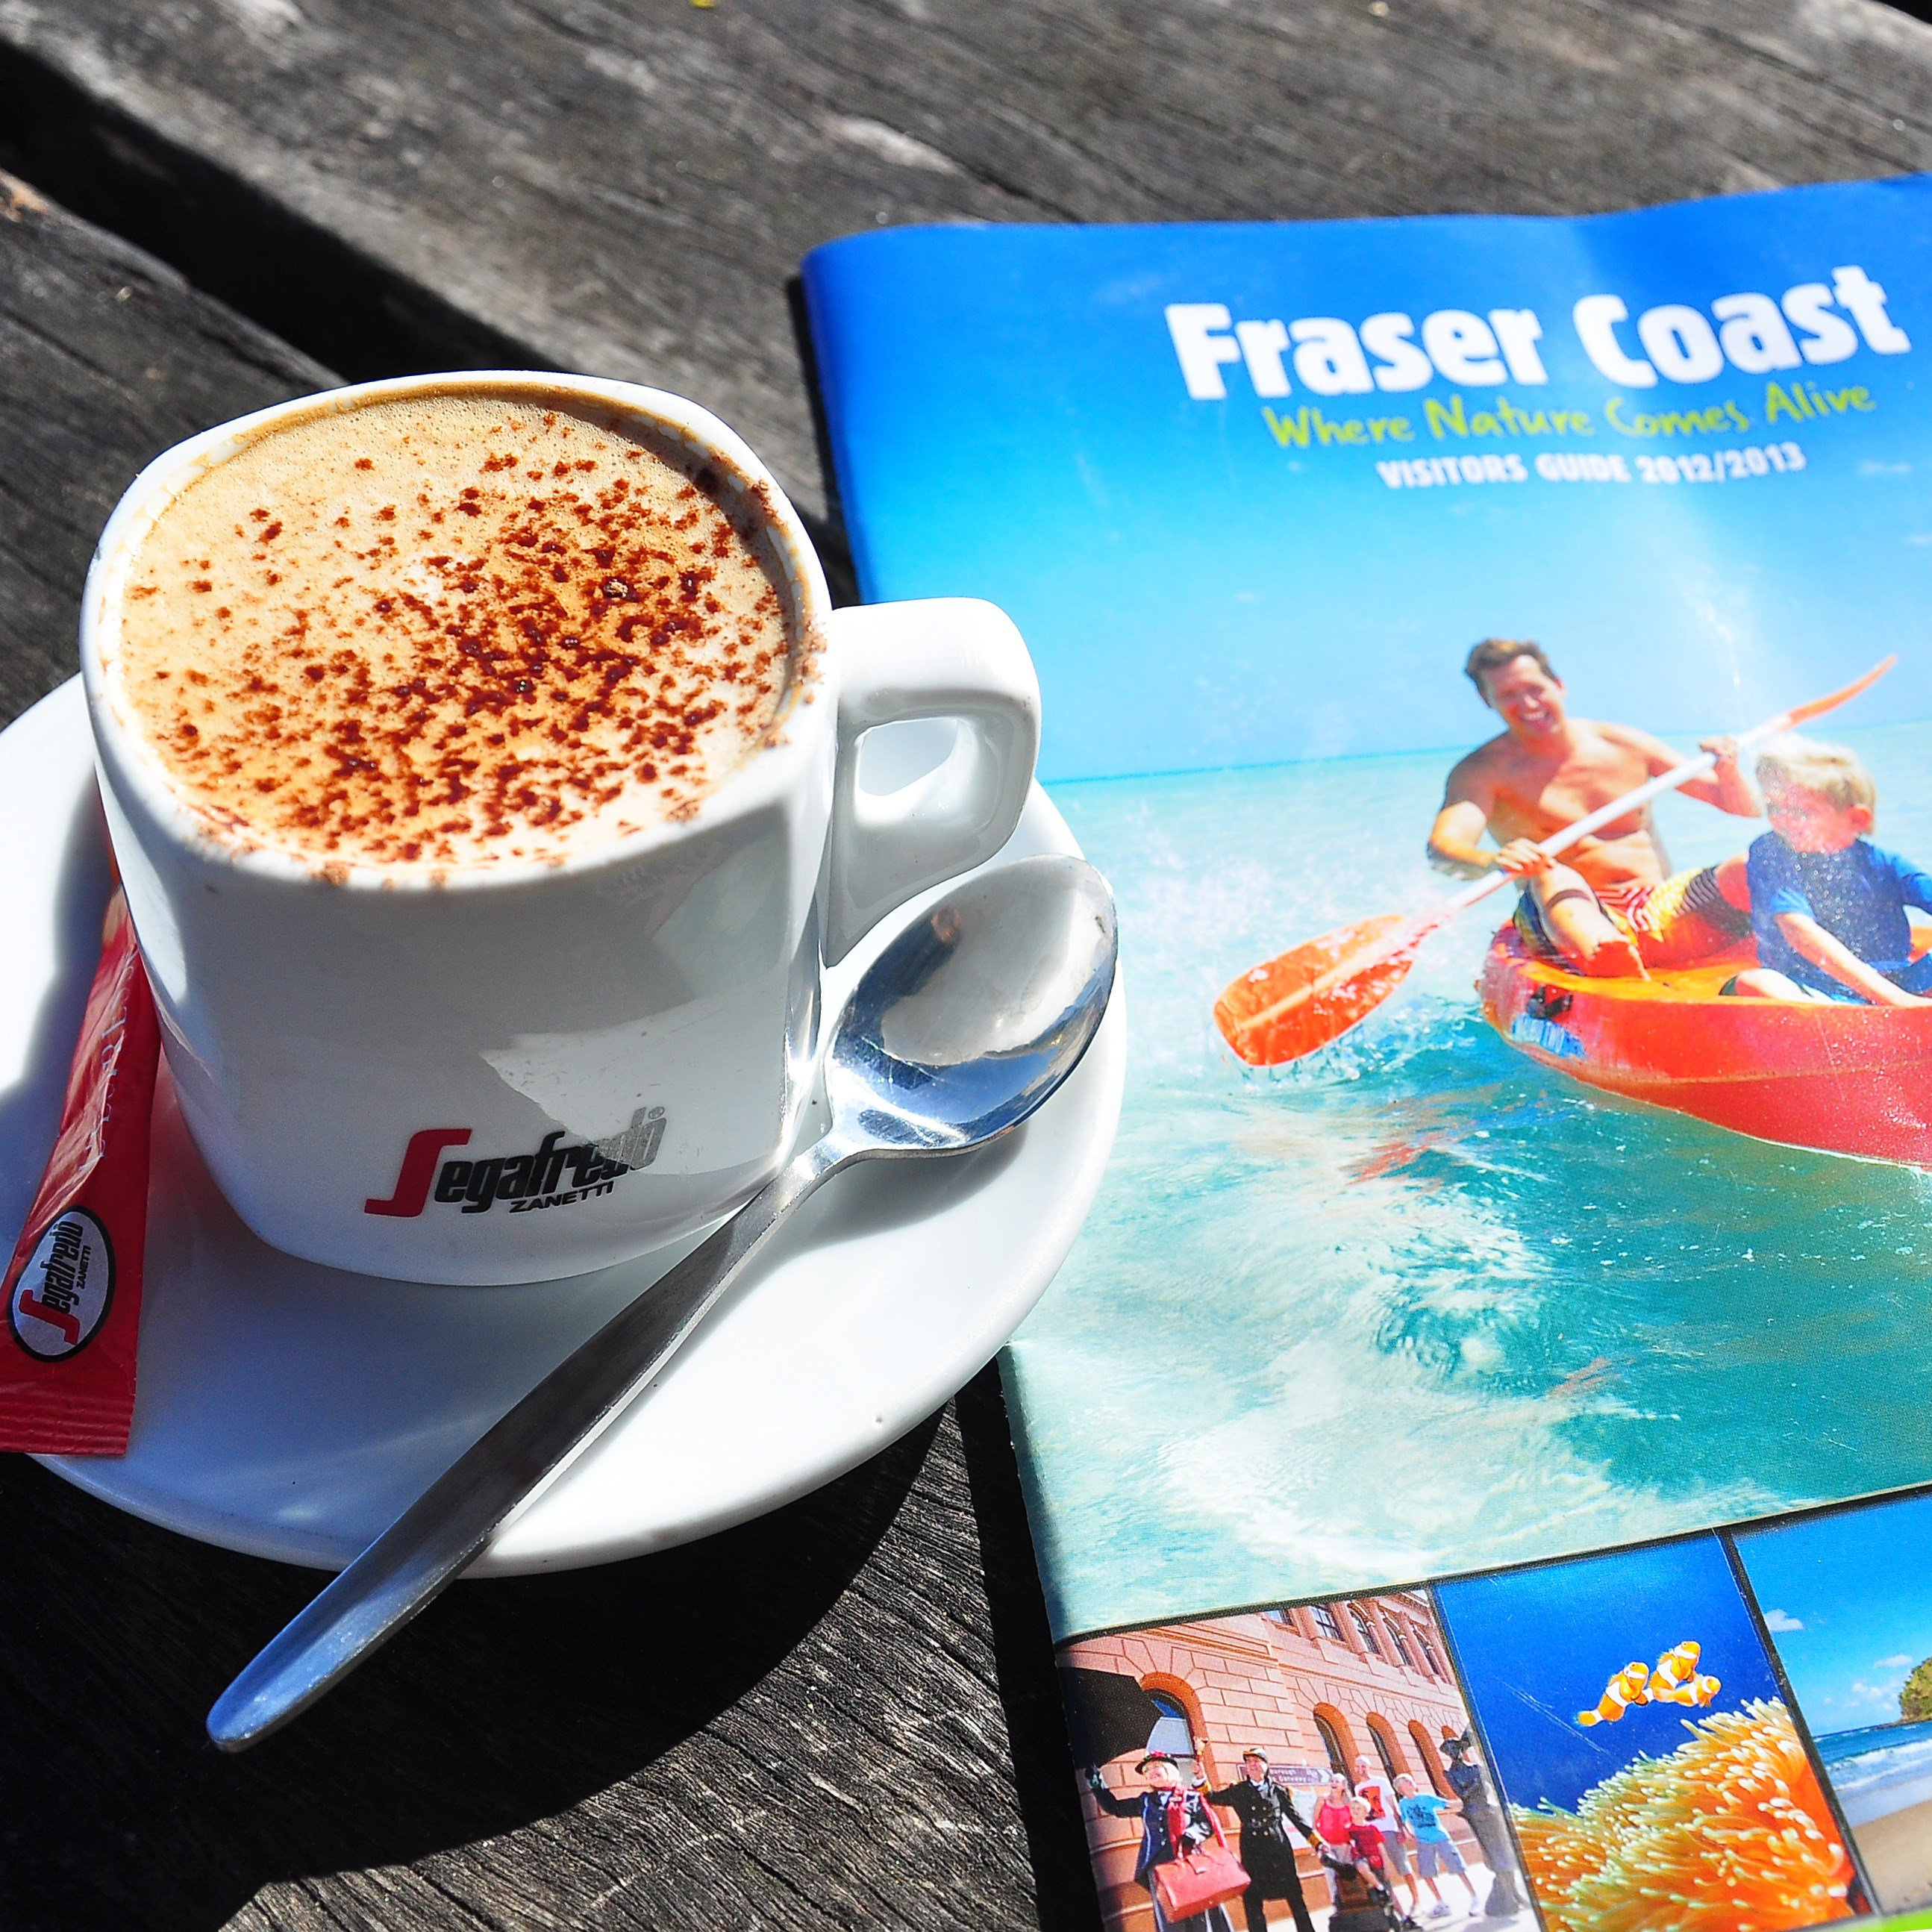 Coffee on the Fraser Coast